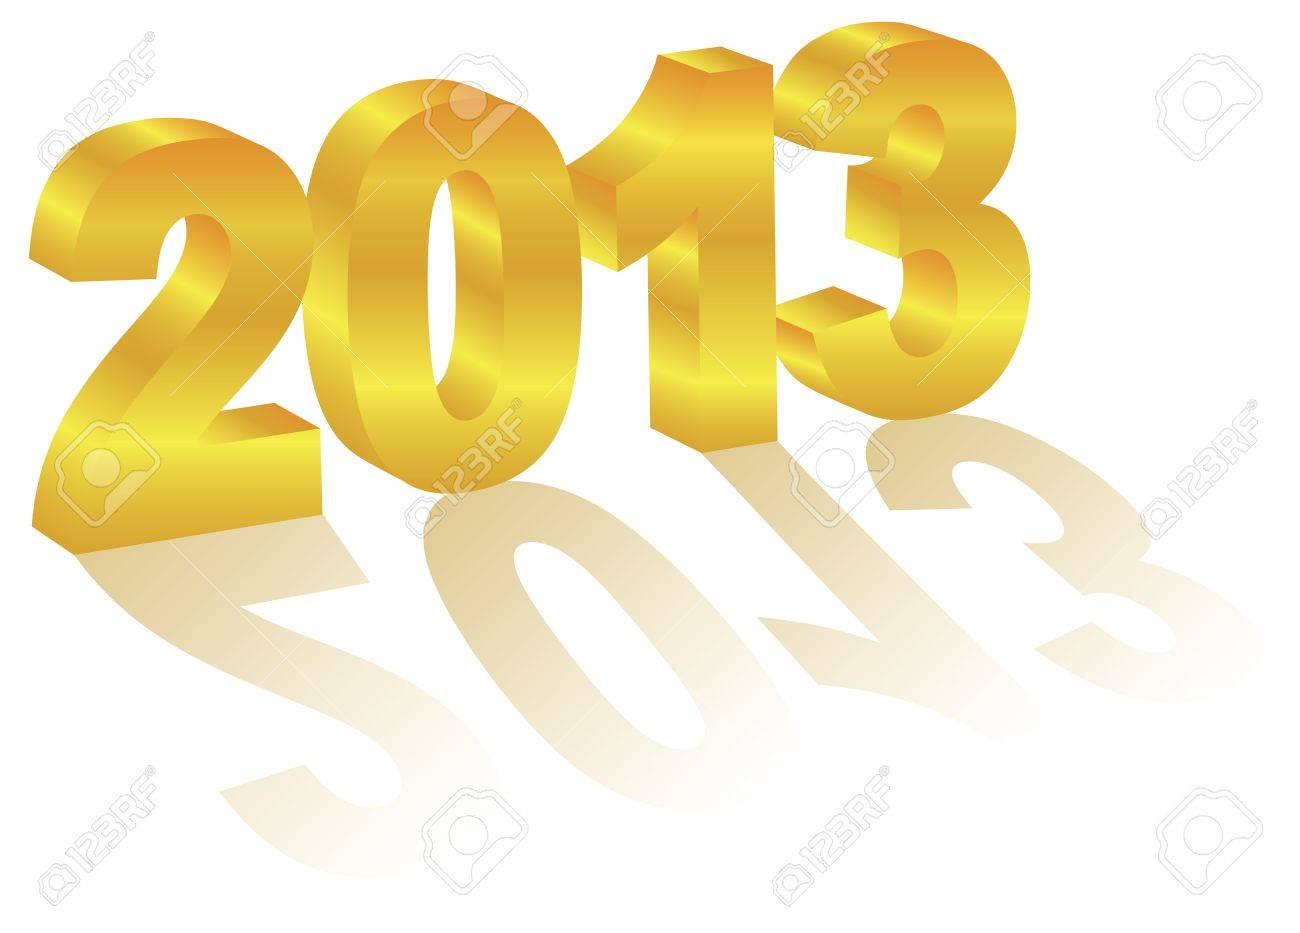 2013 Happy New Year 3D Gold Numbers with Long Shadows Isolated on White Background Stock Vector - 15940101